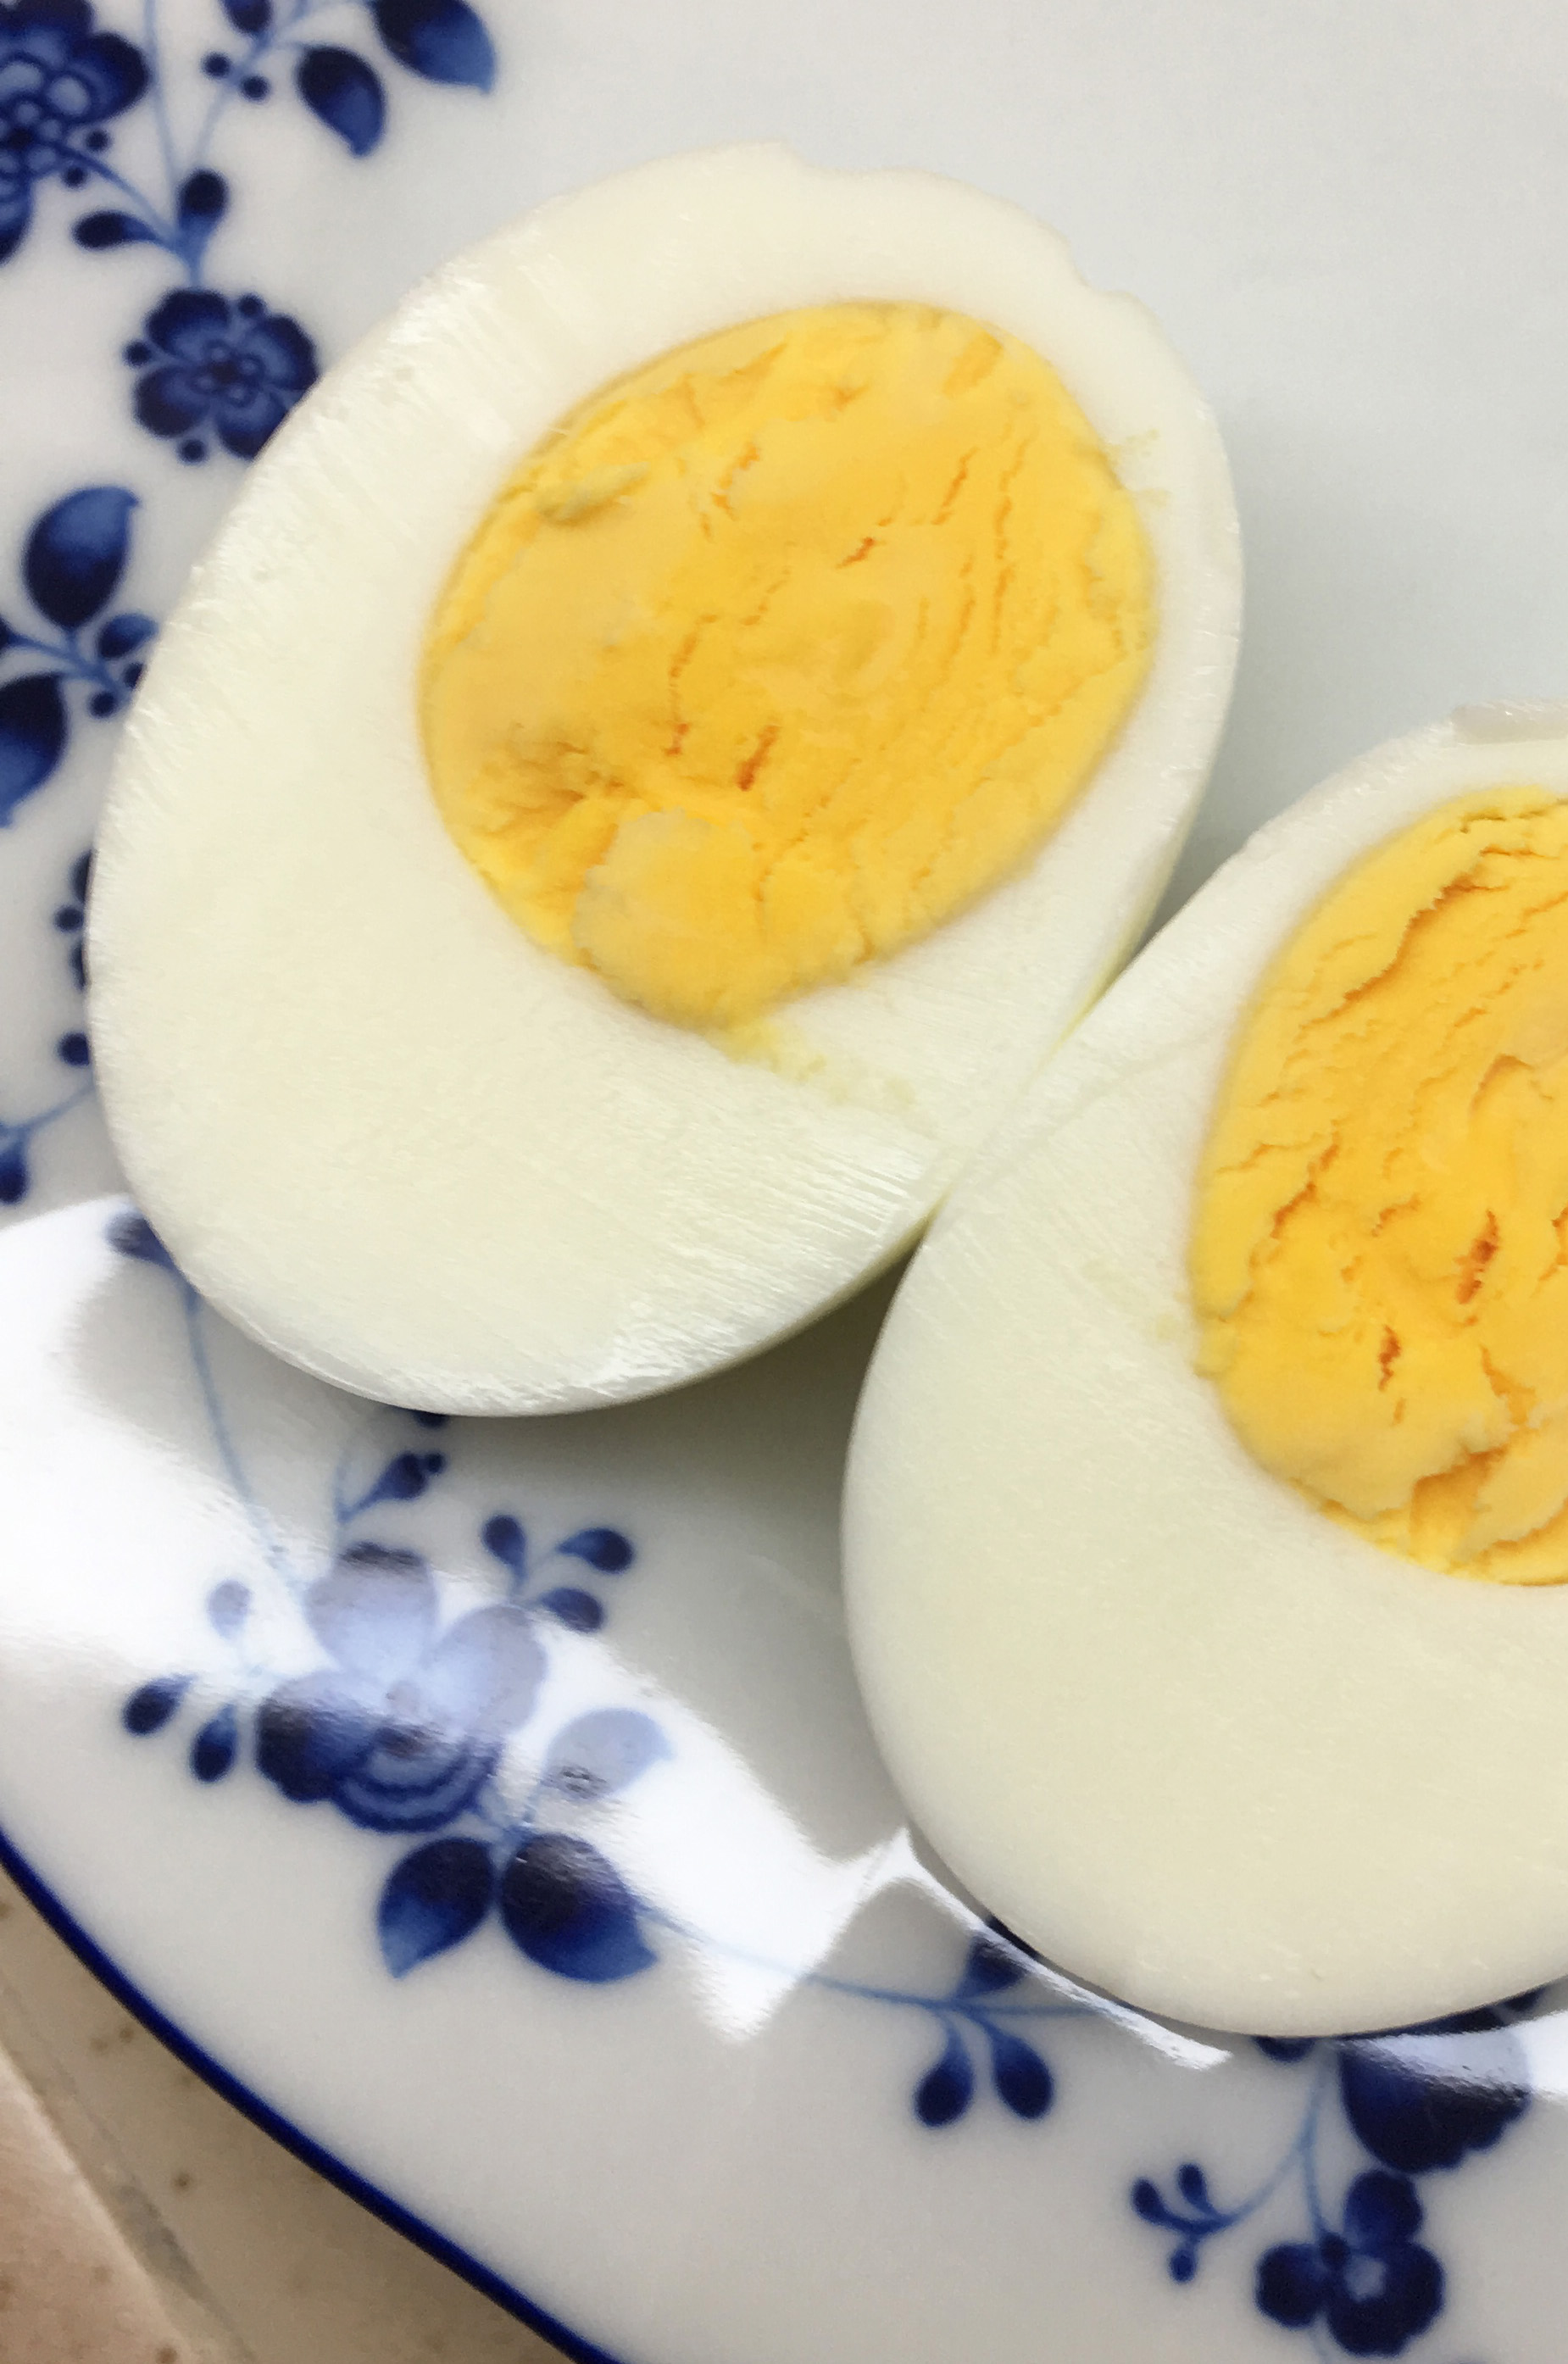 Instant Pot Hard-Cooked Egg